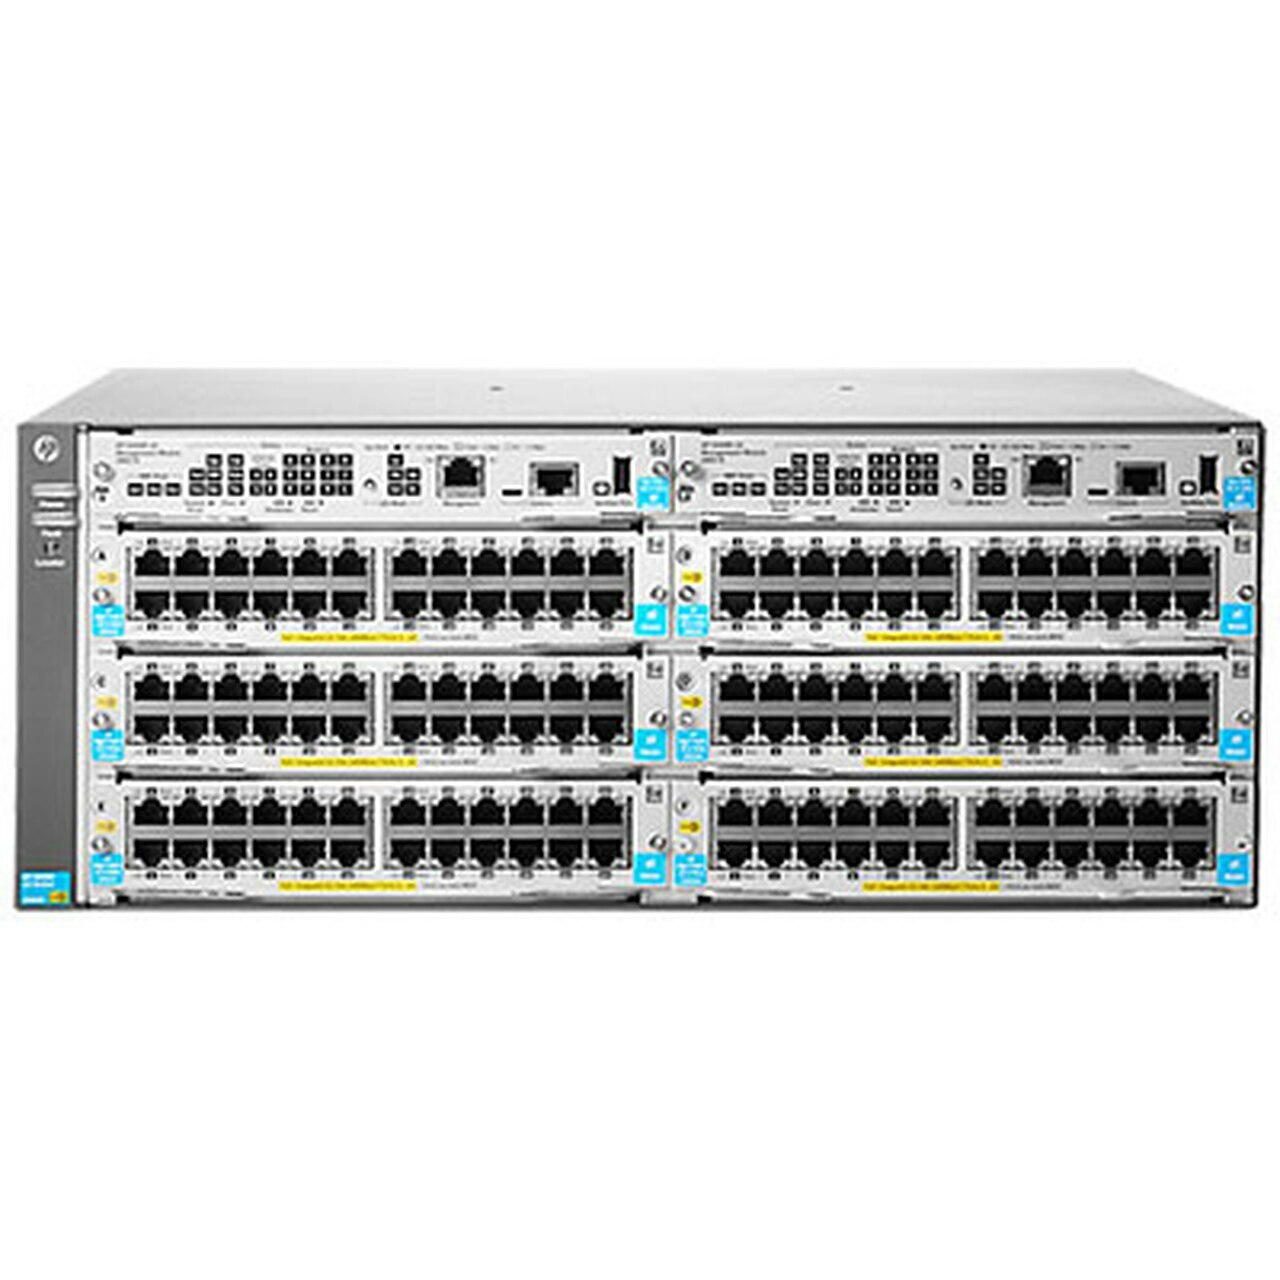 Network Equipment Chassis